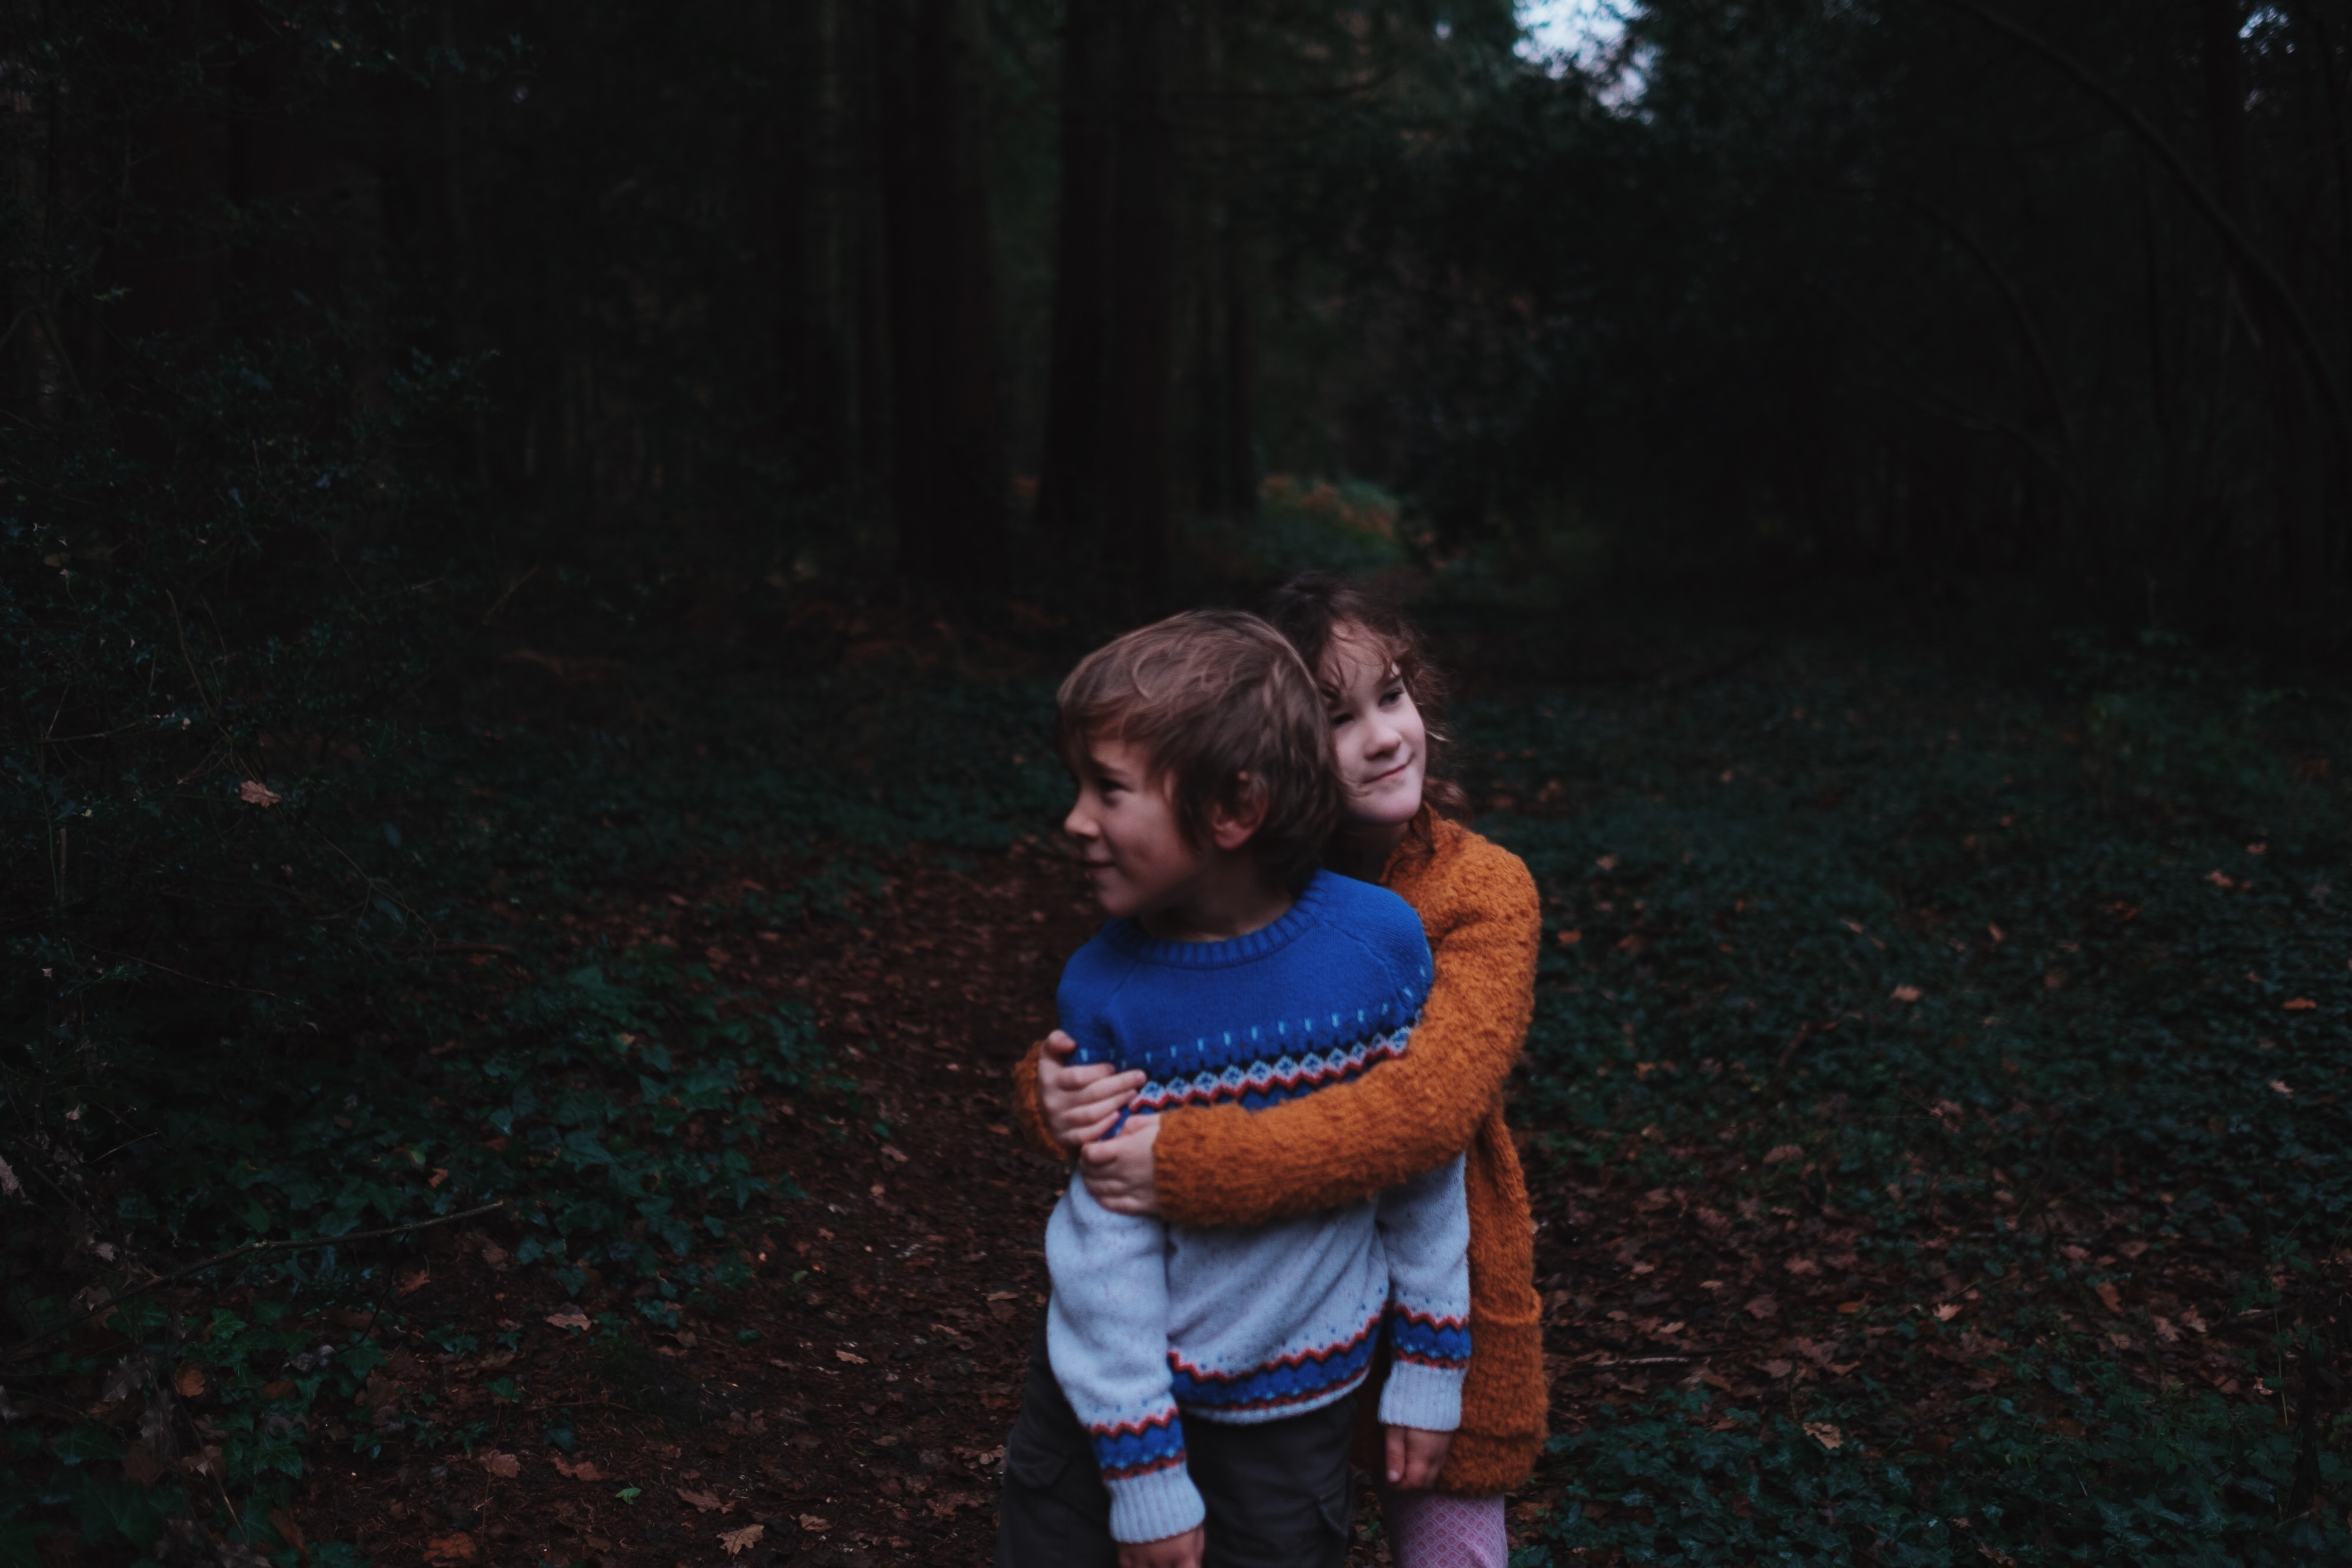 A young girl squeezes a boy in a giant hug